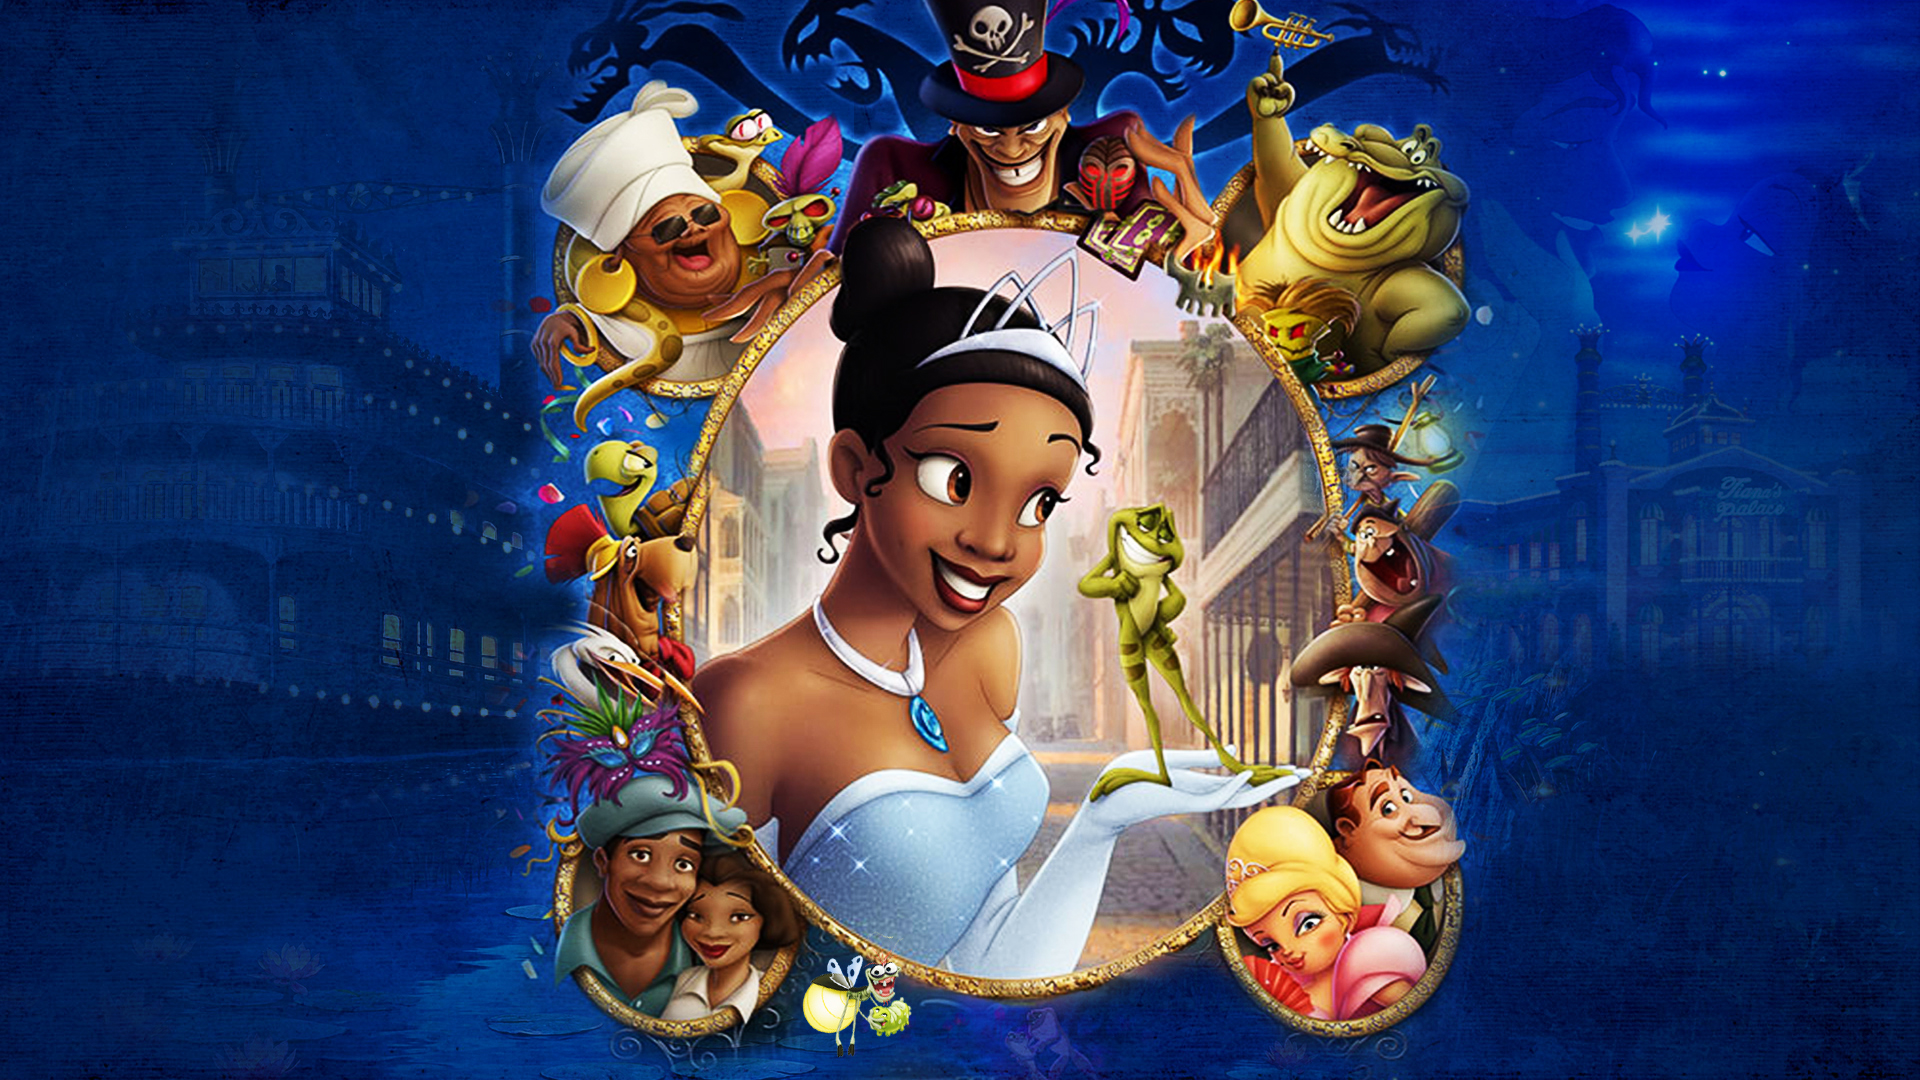 The Princess And The Frog Wallpaper By The Dark Mamba 995 On